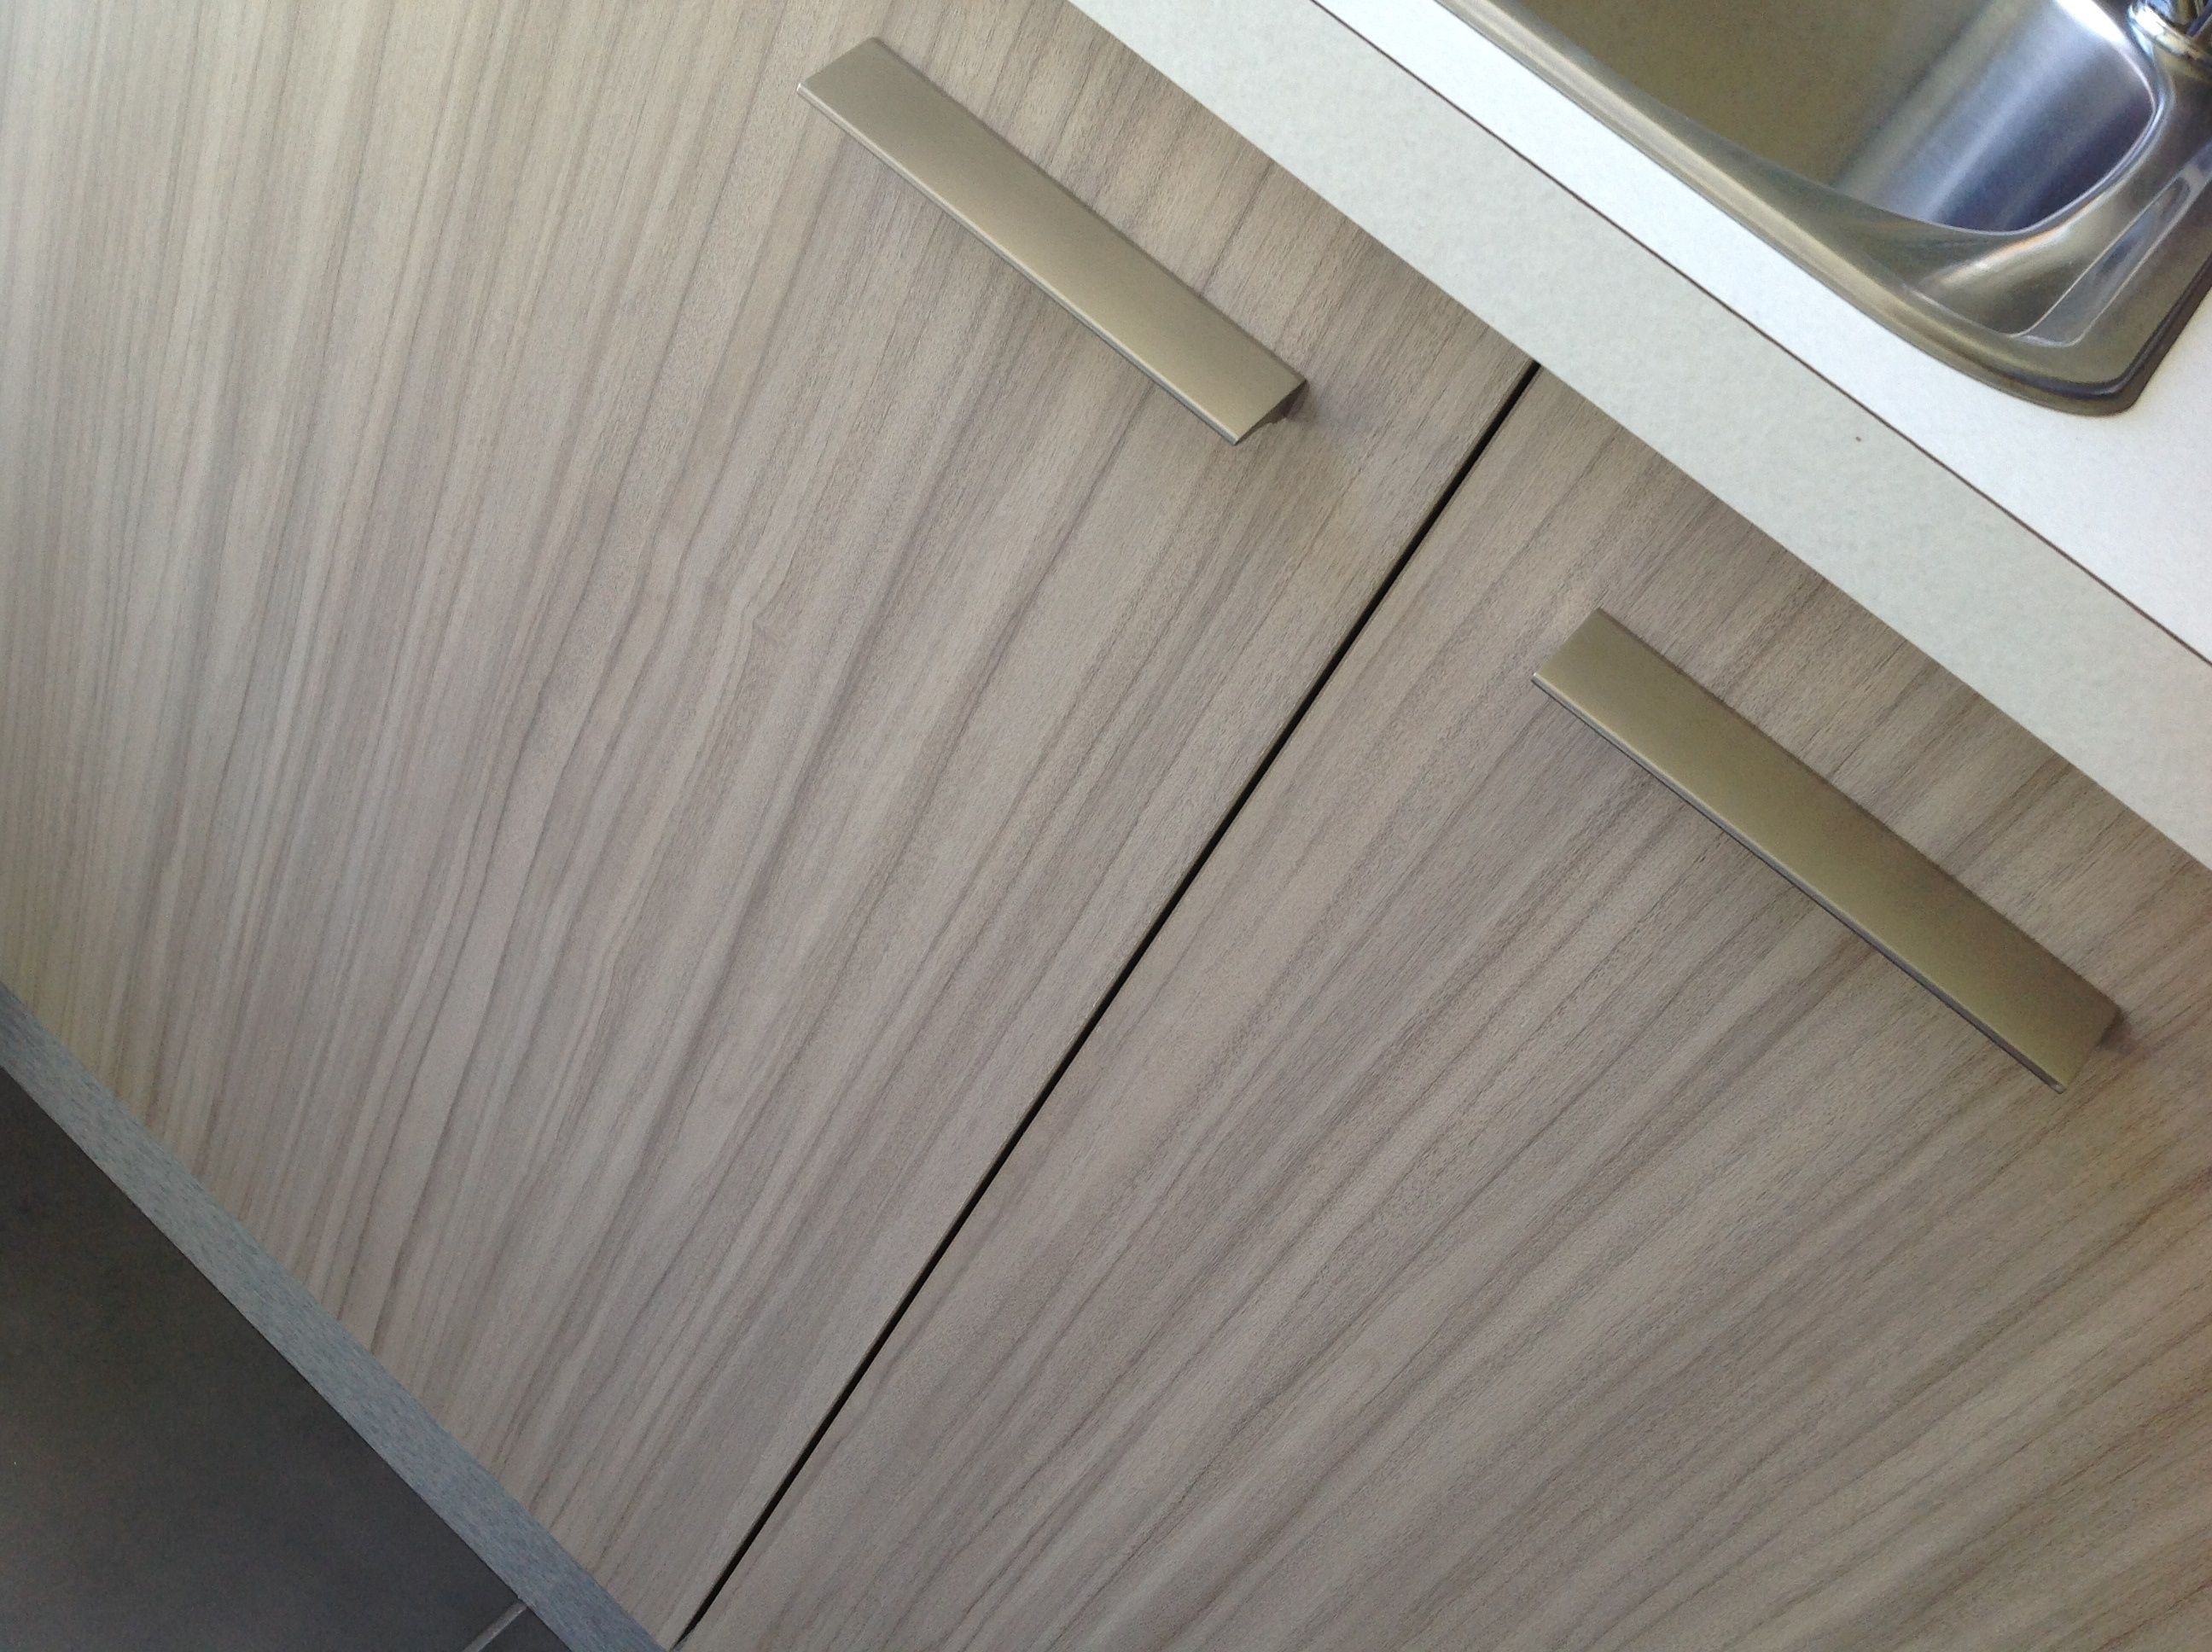 Laundry Our Colour Consultant Chose For The Cabinetry